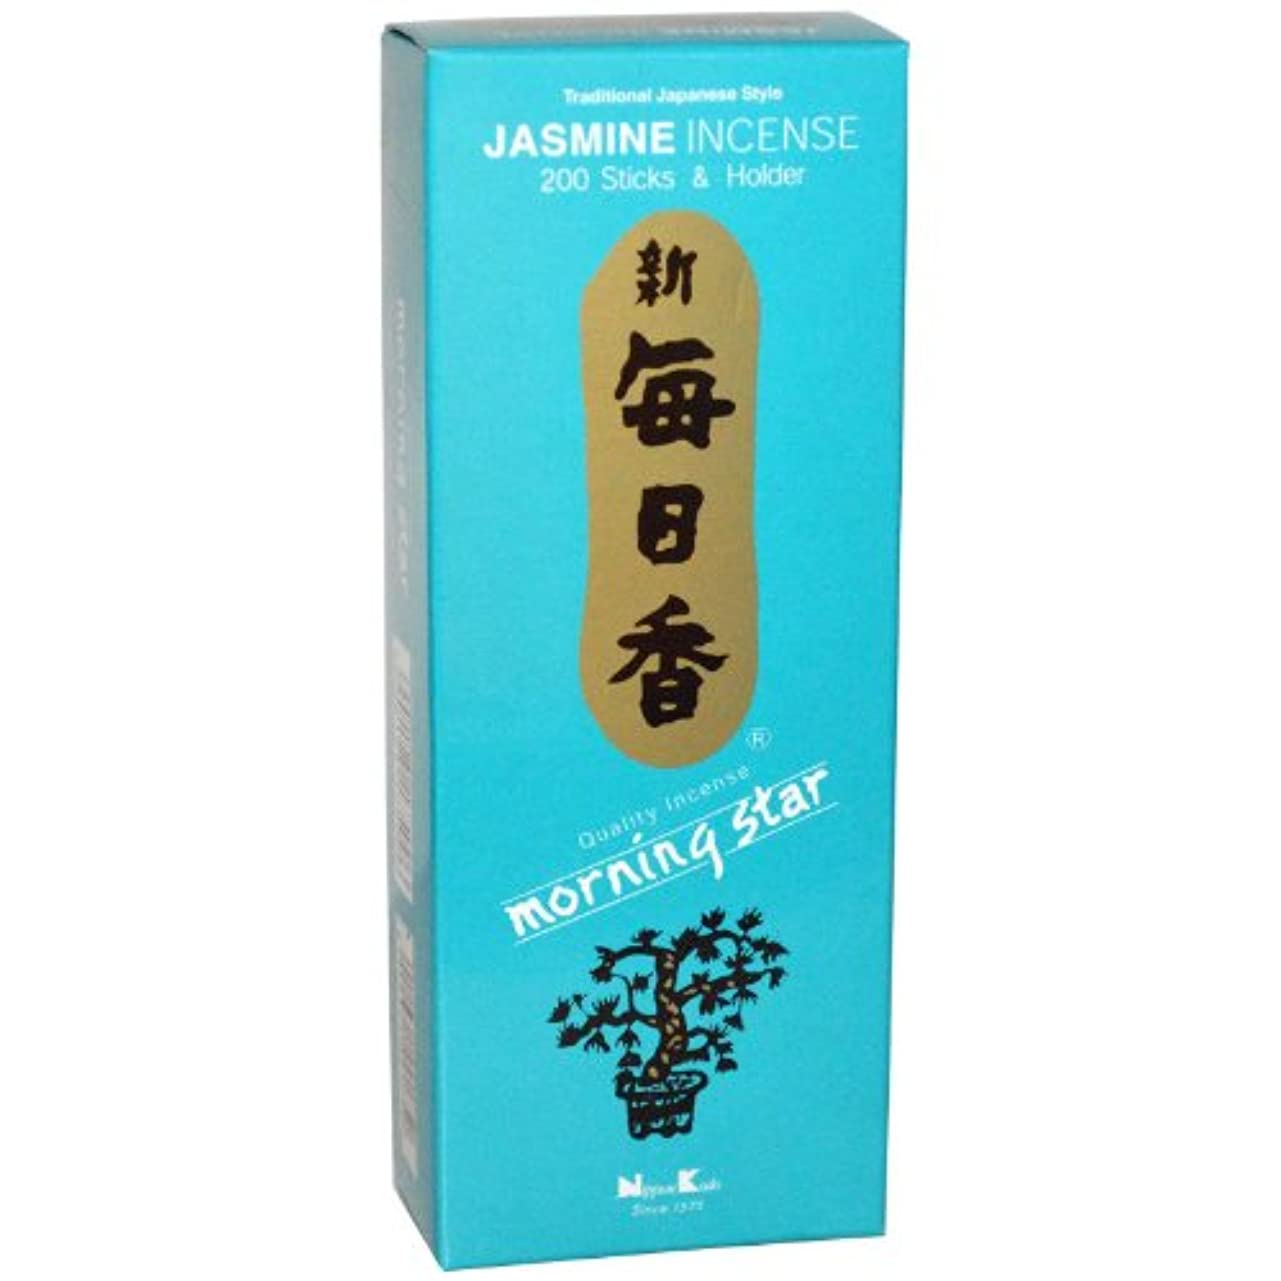 膨らみ個人的に押し下げるNippon Kodo, Morning Star, Jasmine Incense, 200 Sticks & Holder